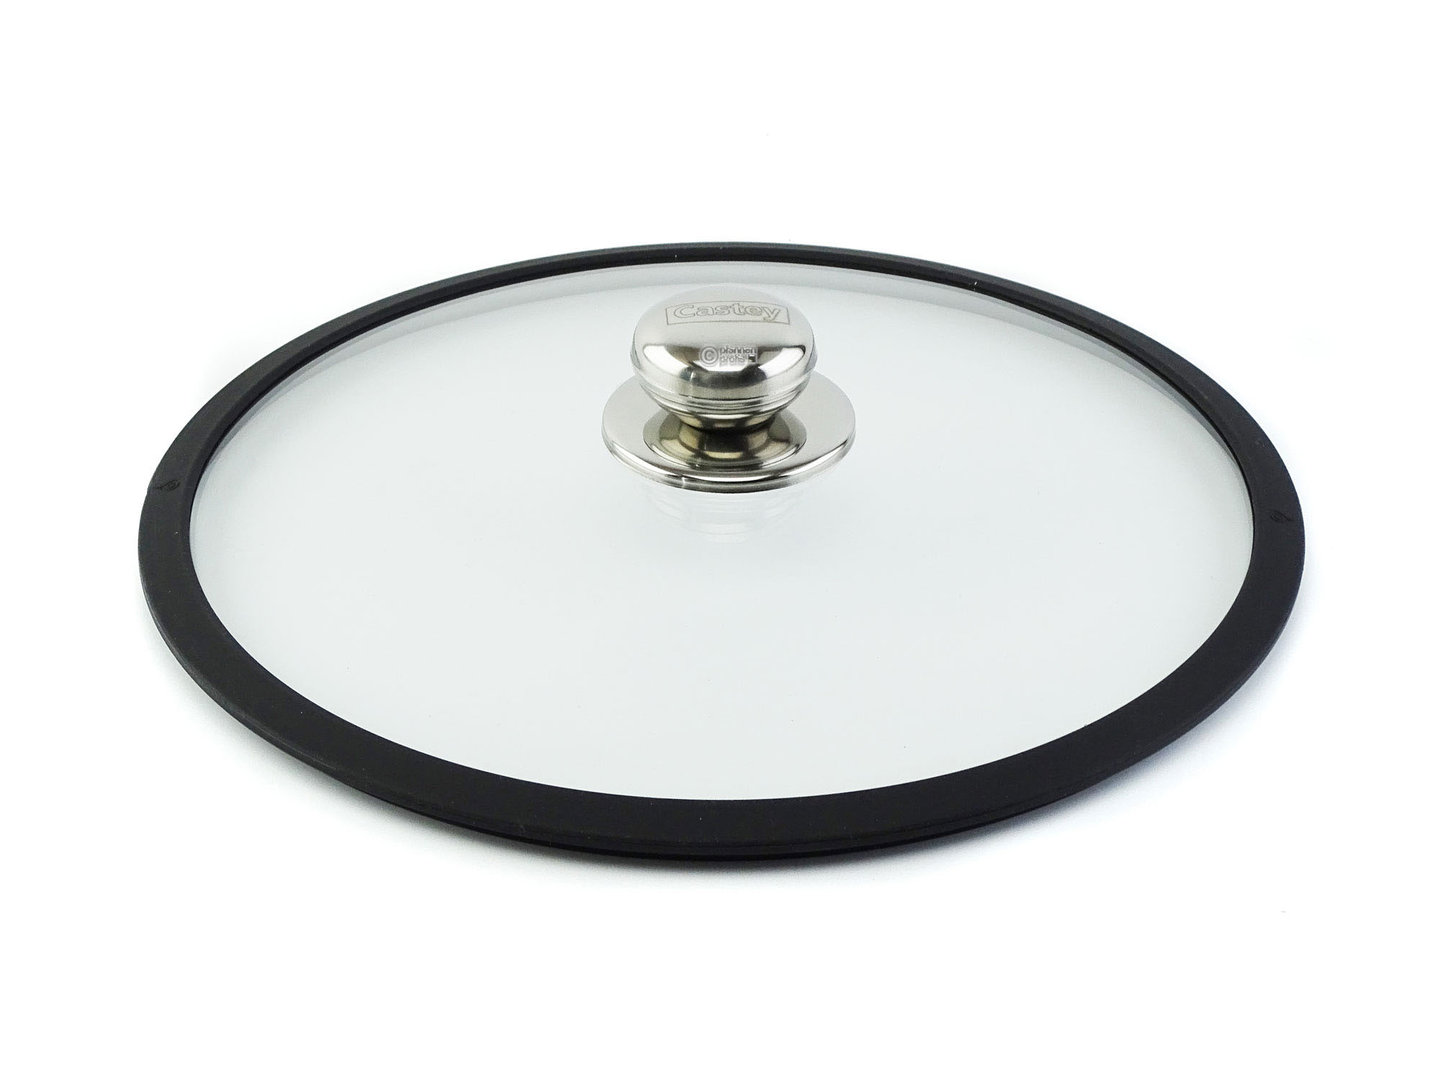 CASTEY ovenproof glass lid 28 cm with silicone rim